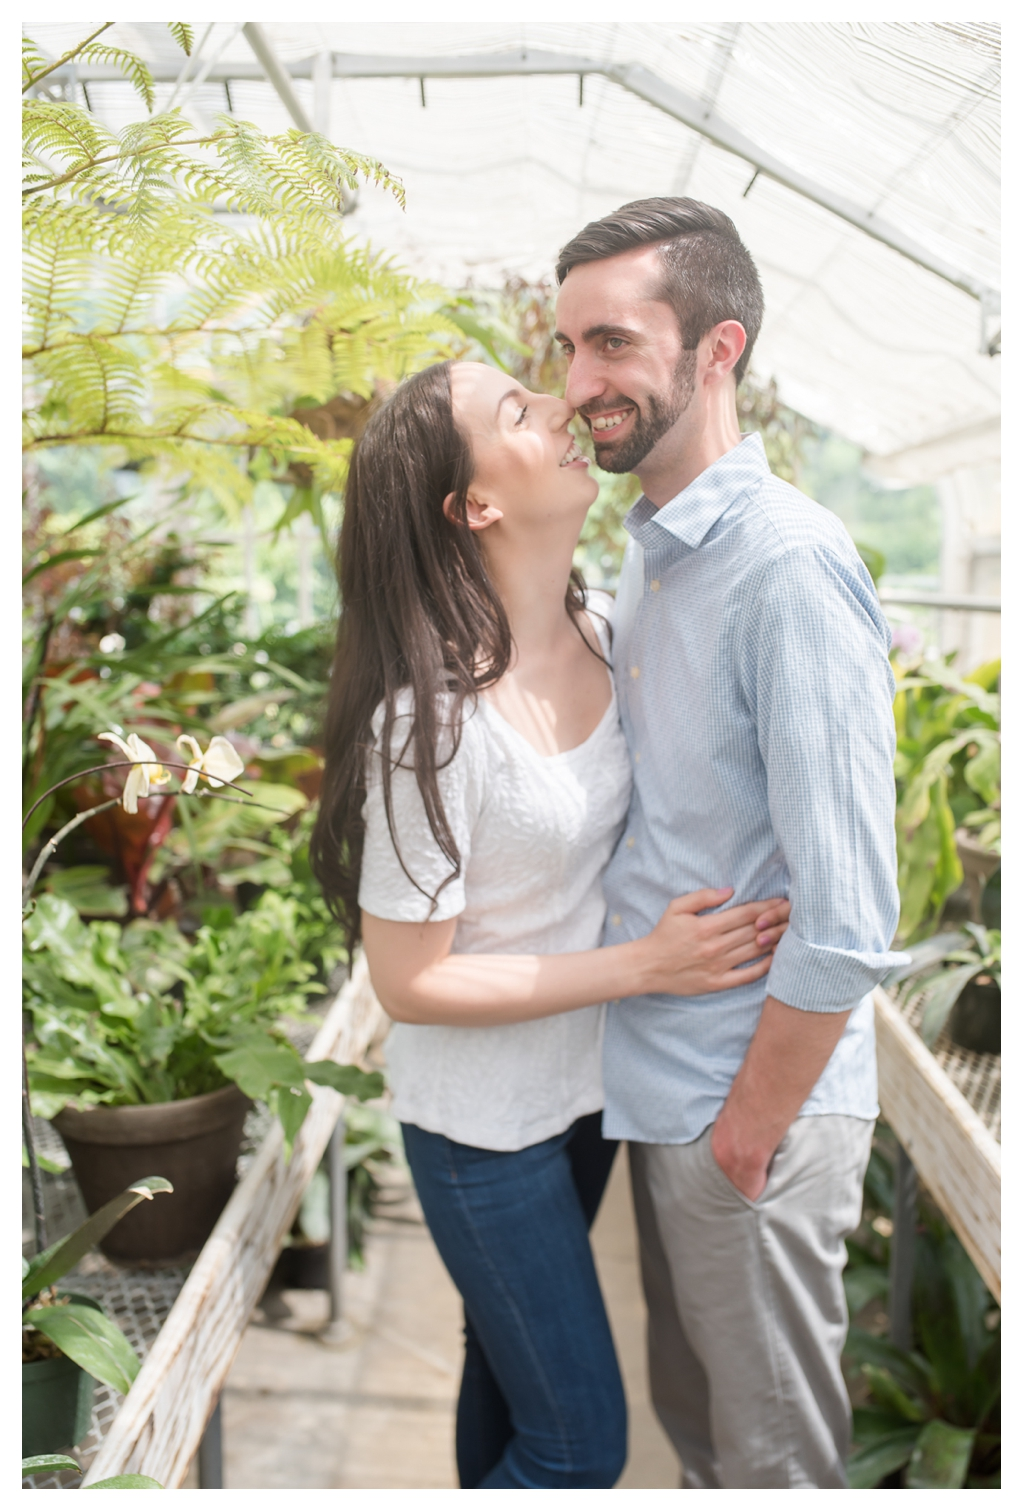 Lily House and Gardens Engagement Session_0824.jpg